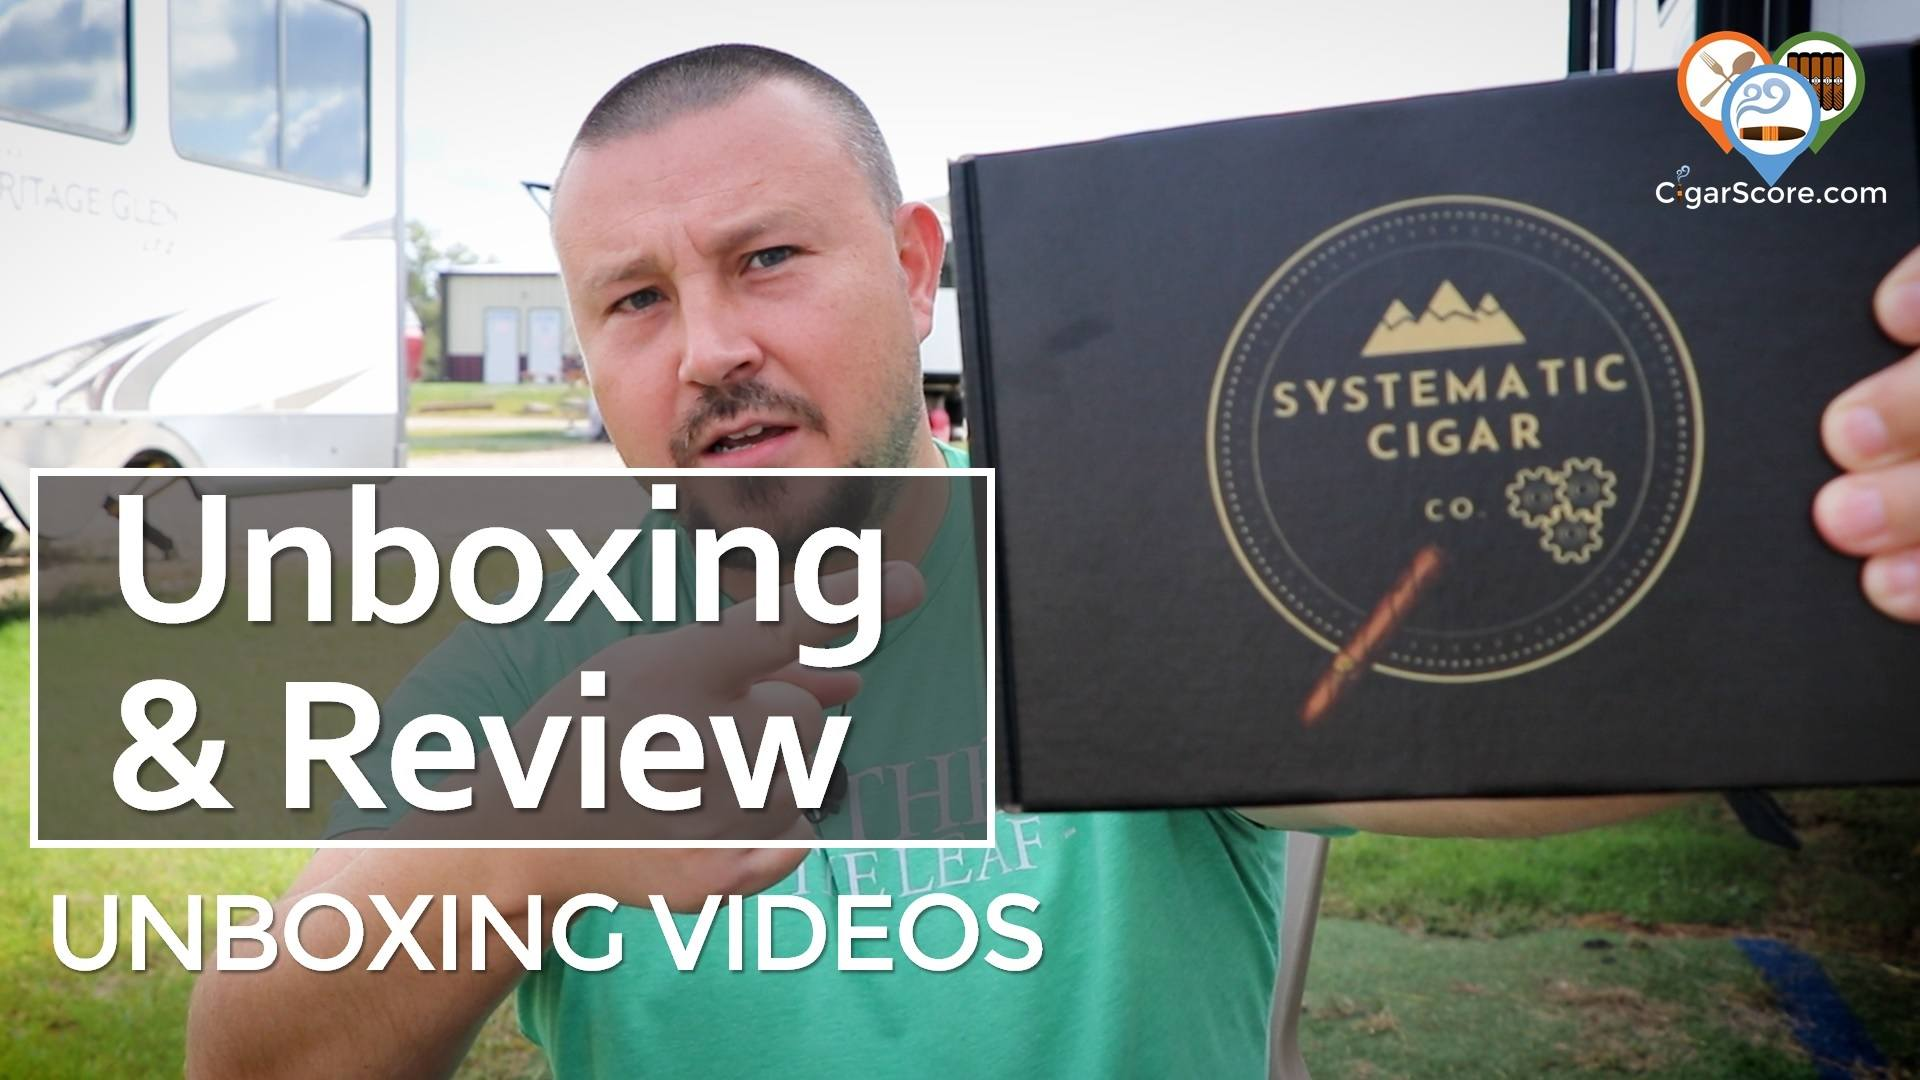 UNBOXING – Systematic Cigar Co